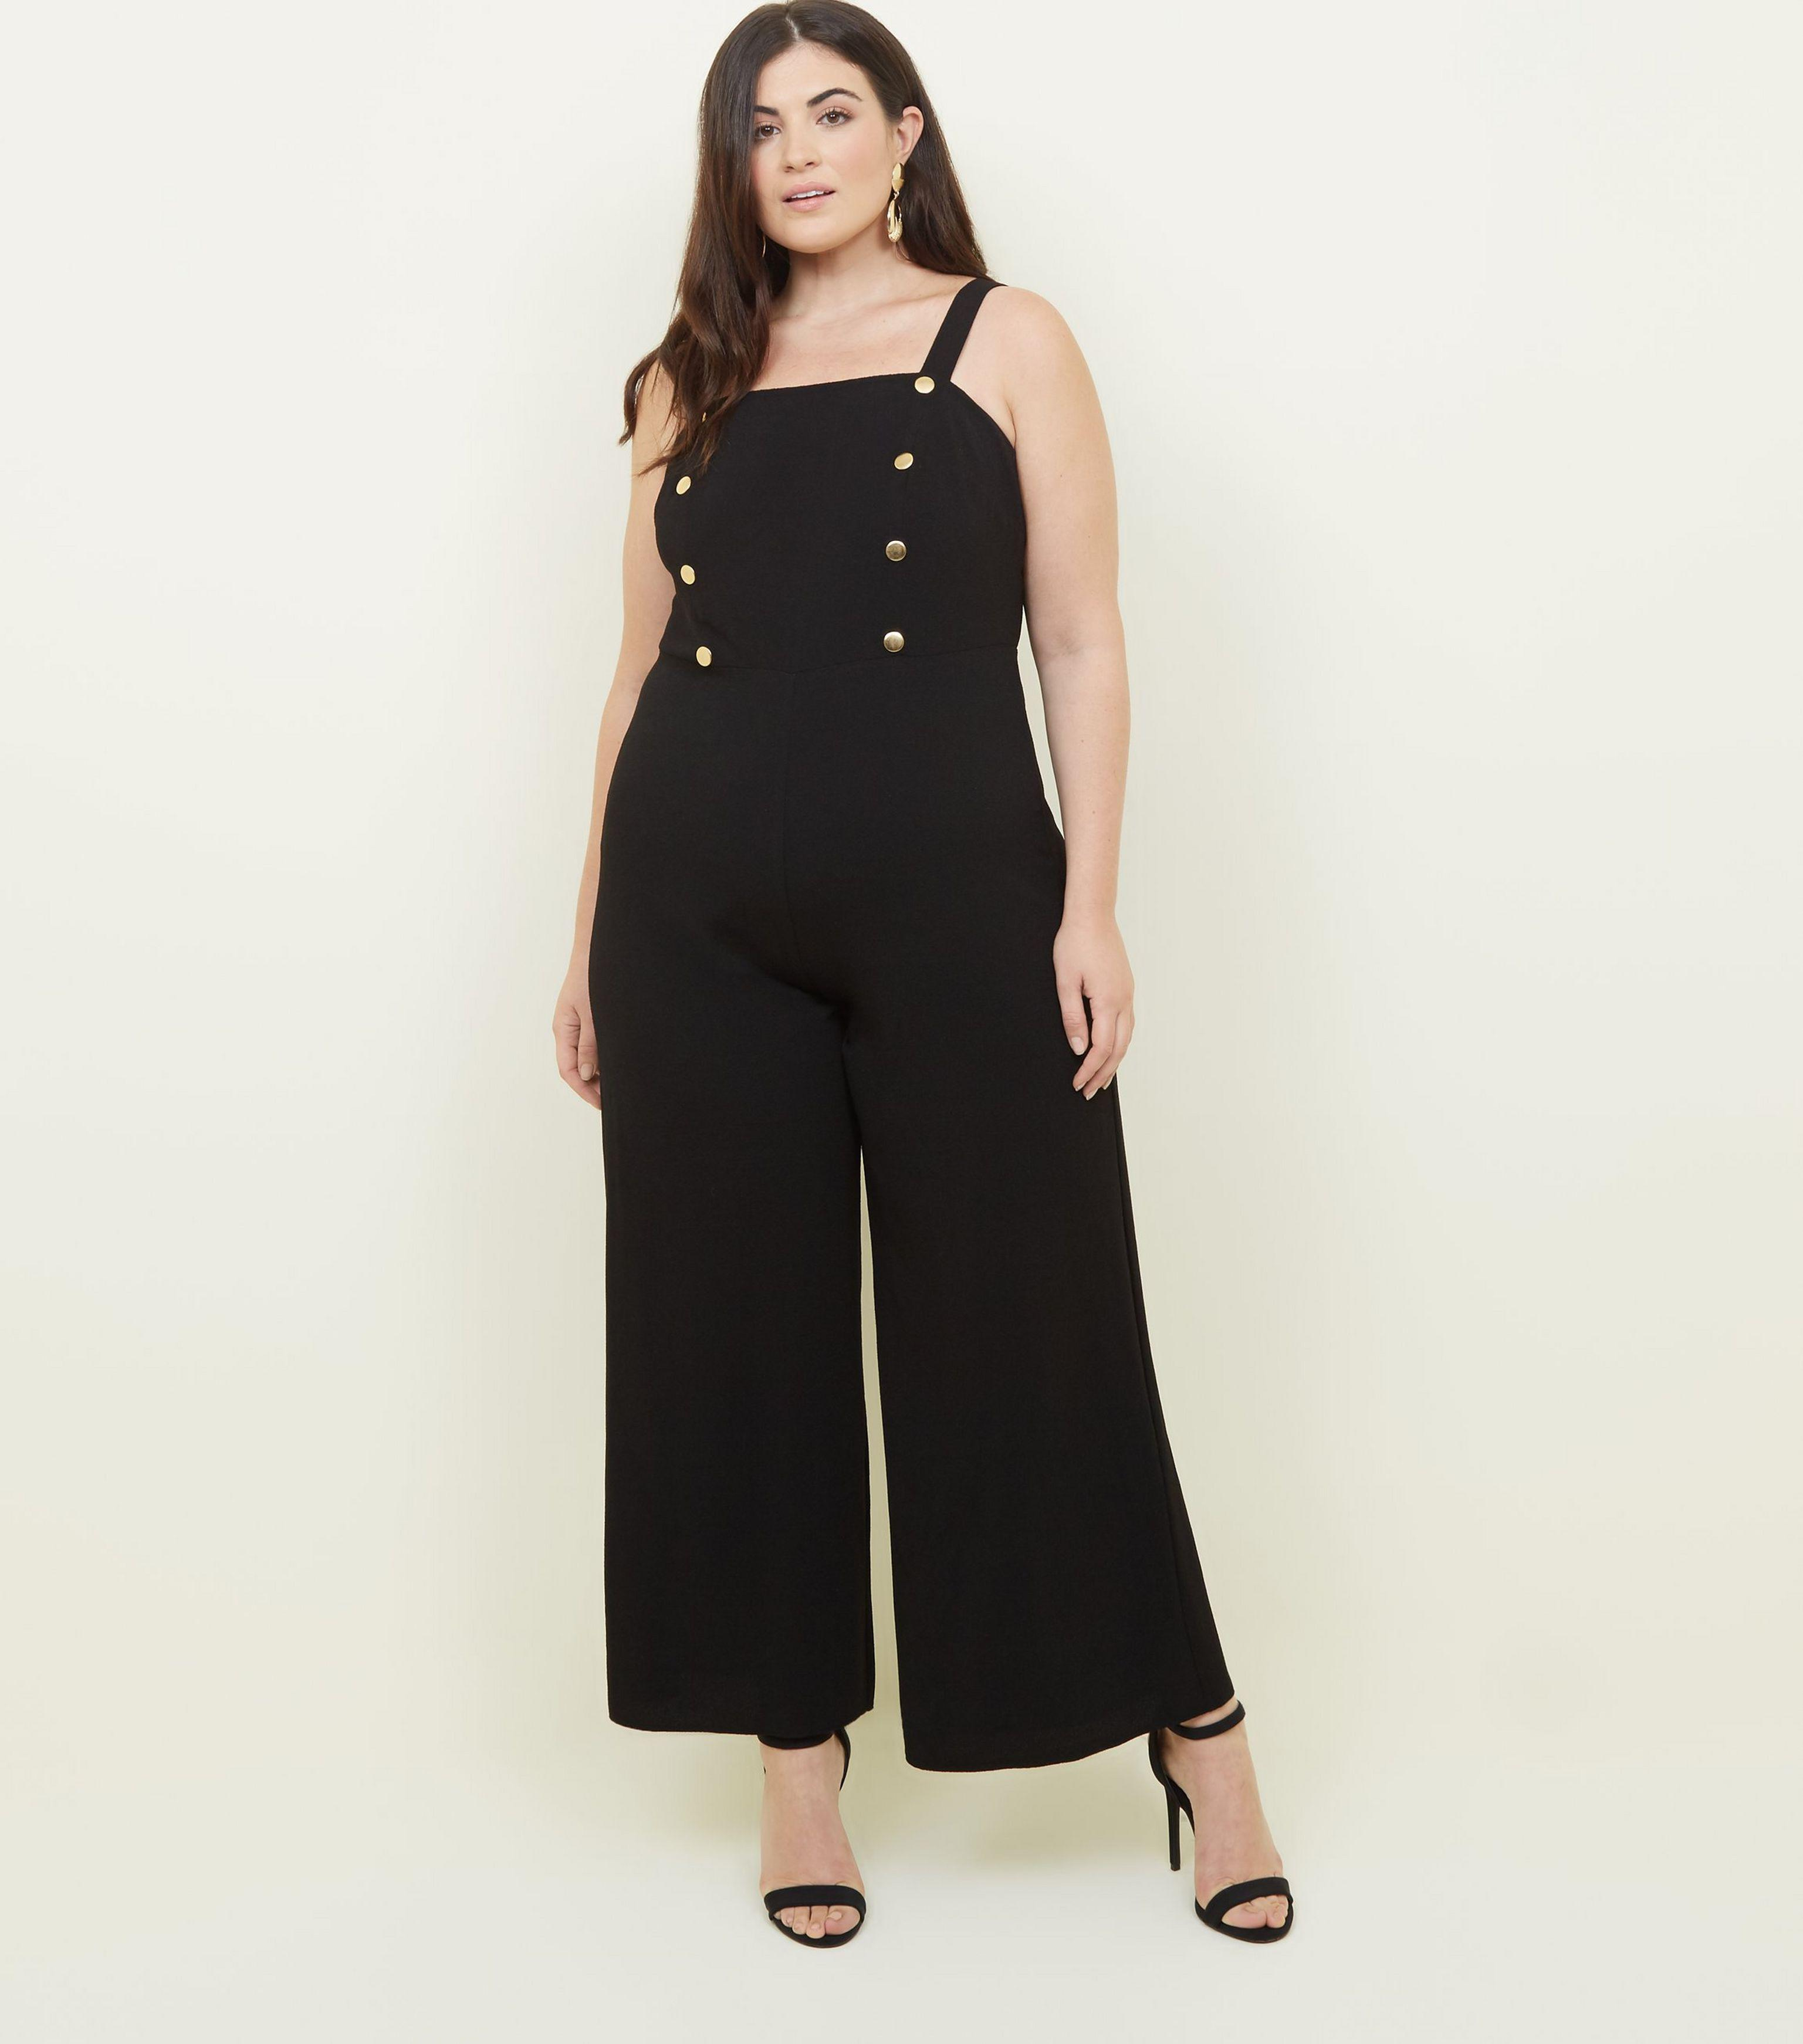 9c21e89fa7 New Look Curves Black Gold Button Front Cropped Jumpsuit in Black - Lyst